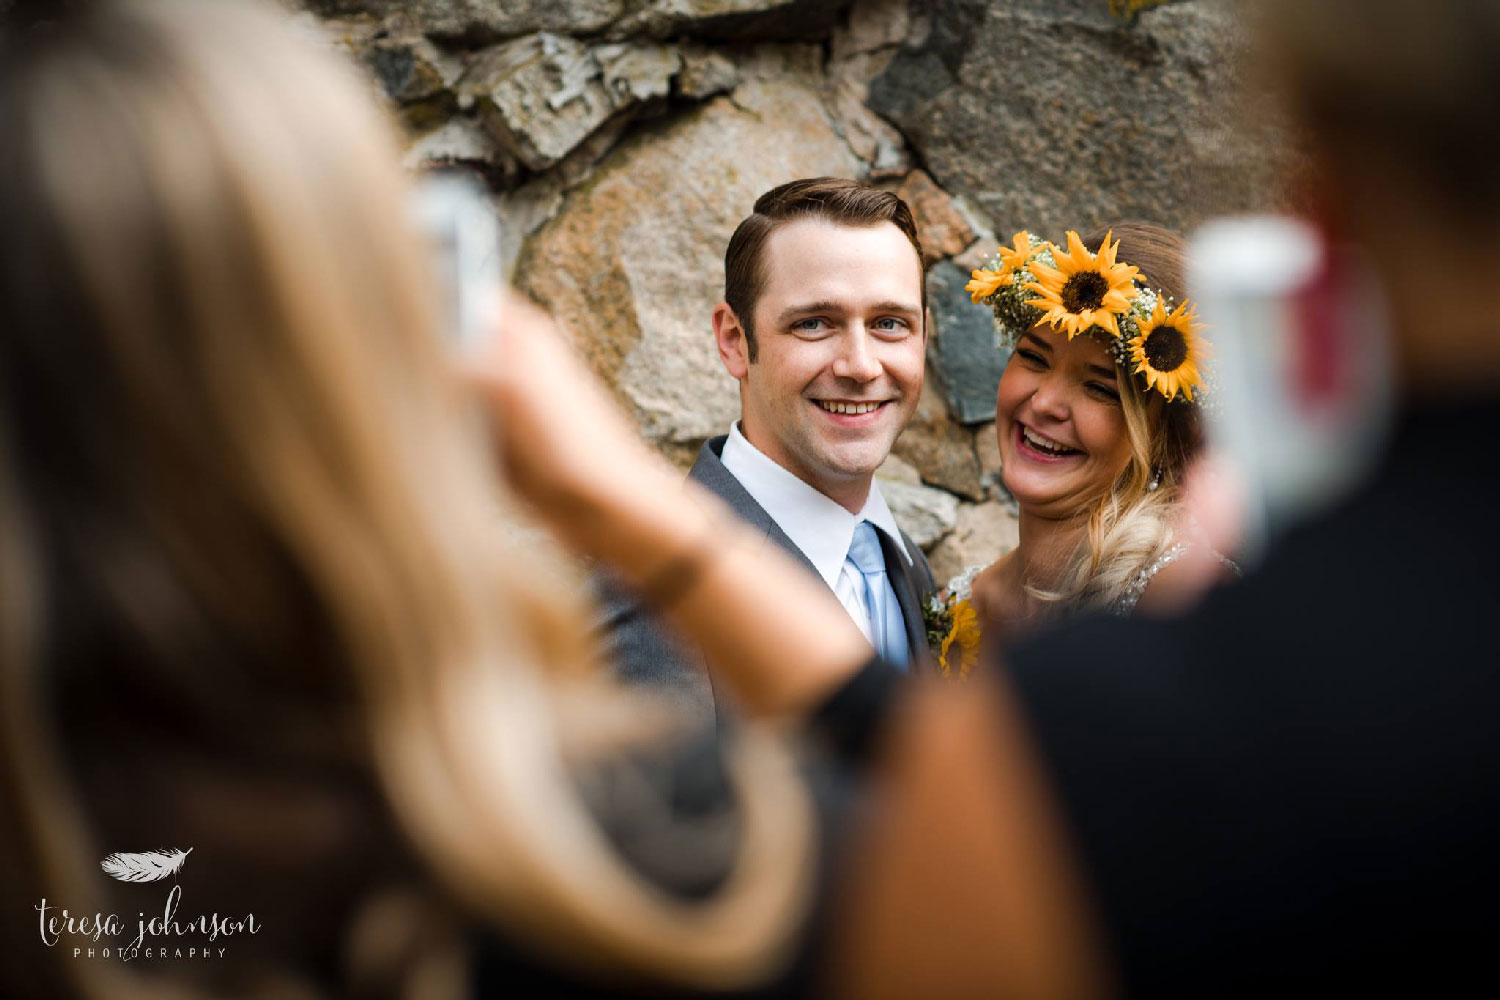 groom and bride wearing sunflower crown posing for photos connecticut wedding photographer teresa johnson